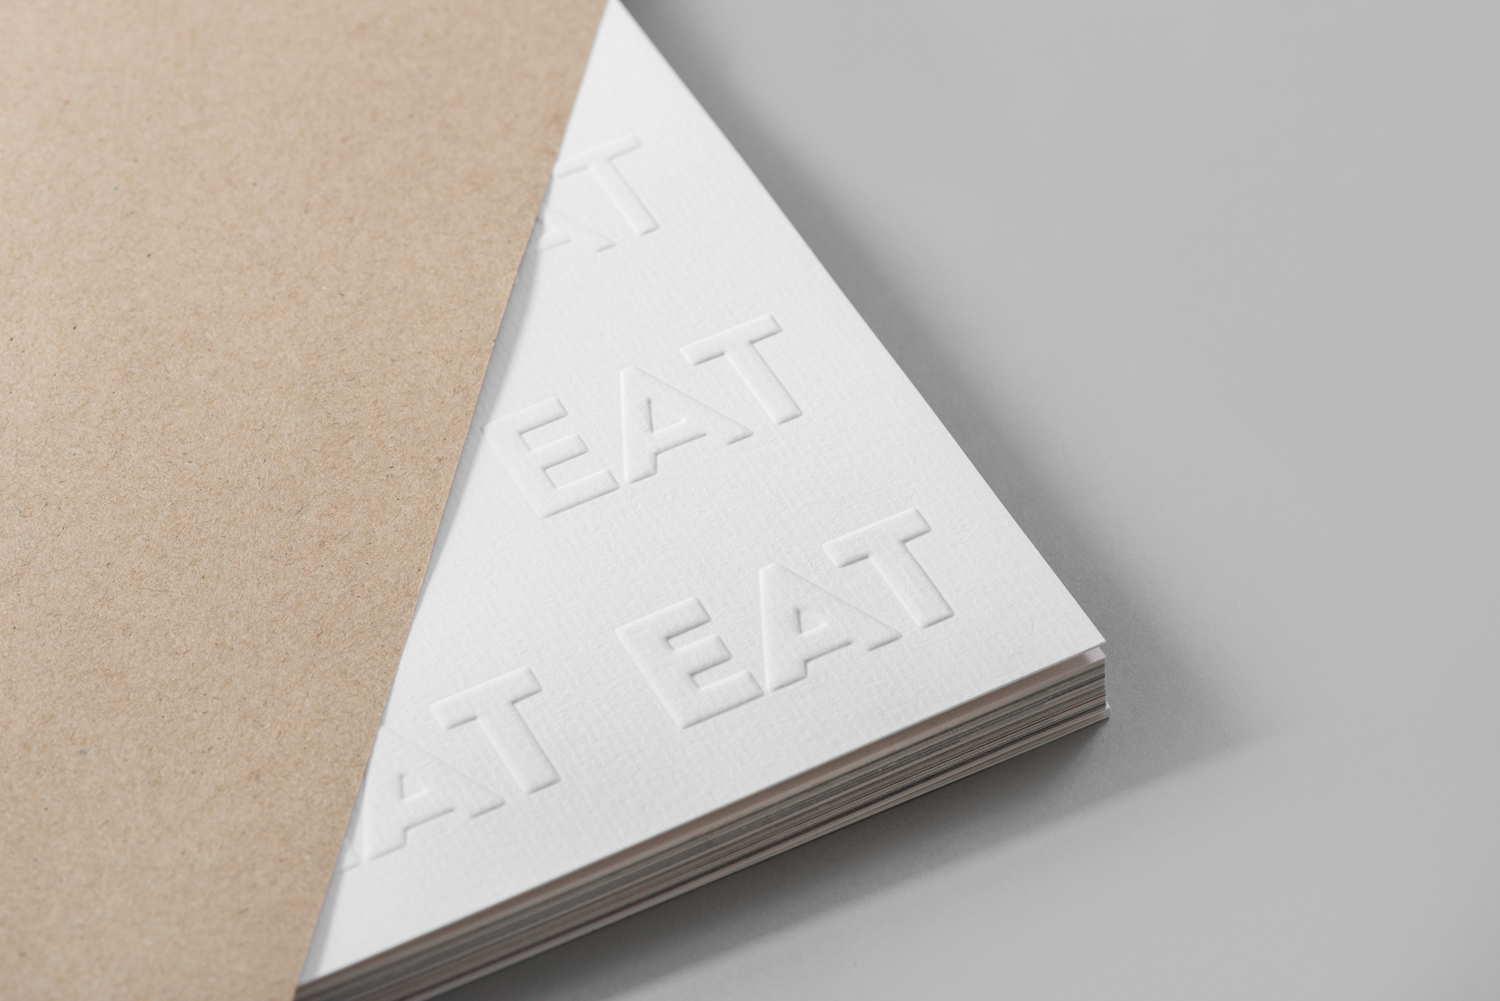 Catalogue with blind emboss detail by Fable for EAT, the second installation of a two-year long series of exhibitions on Singapore's food culture